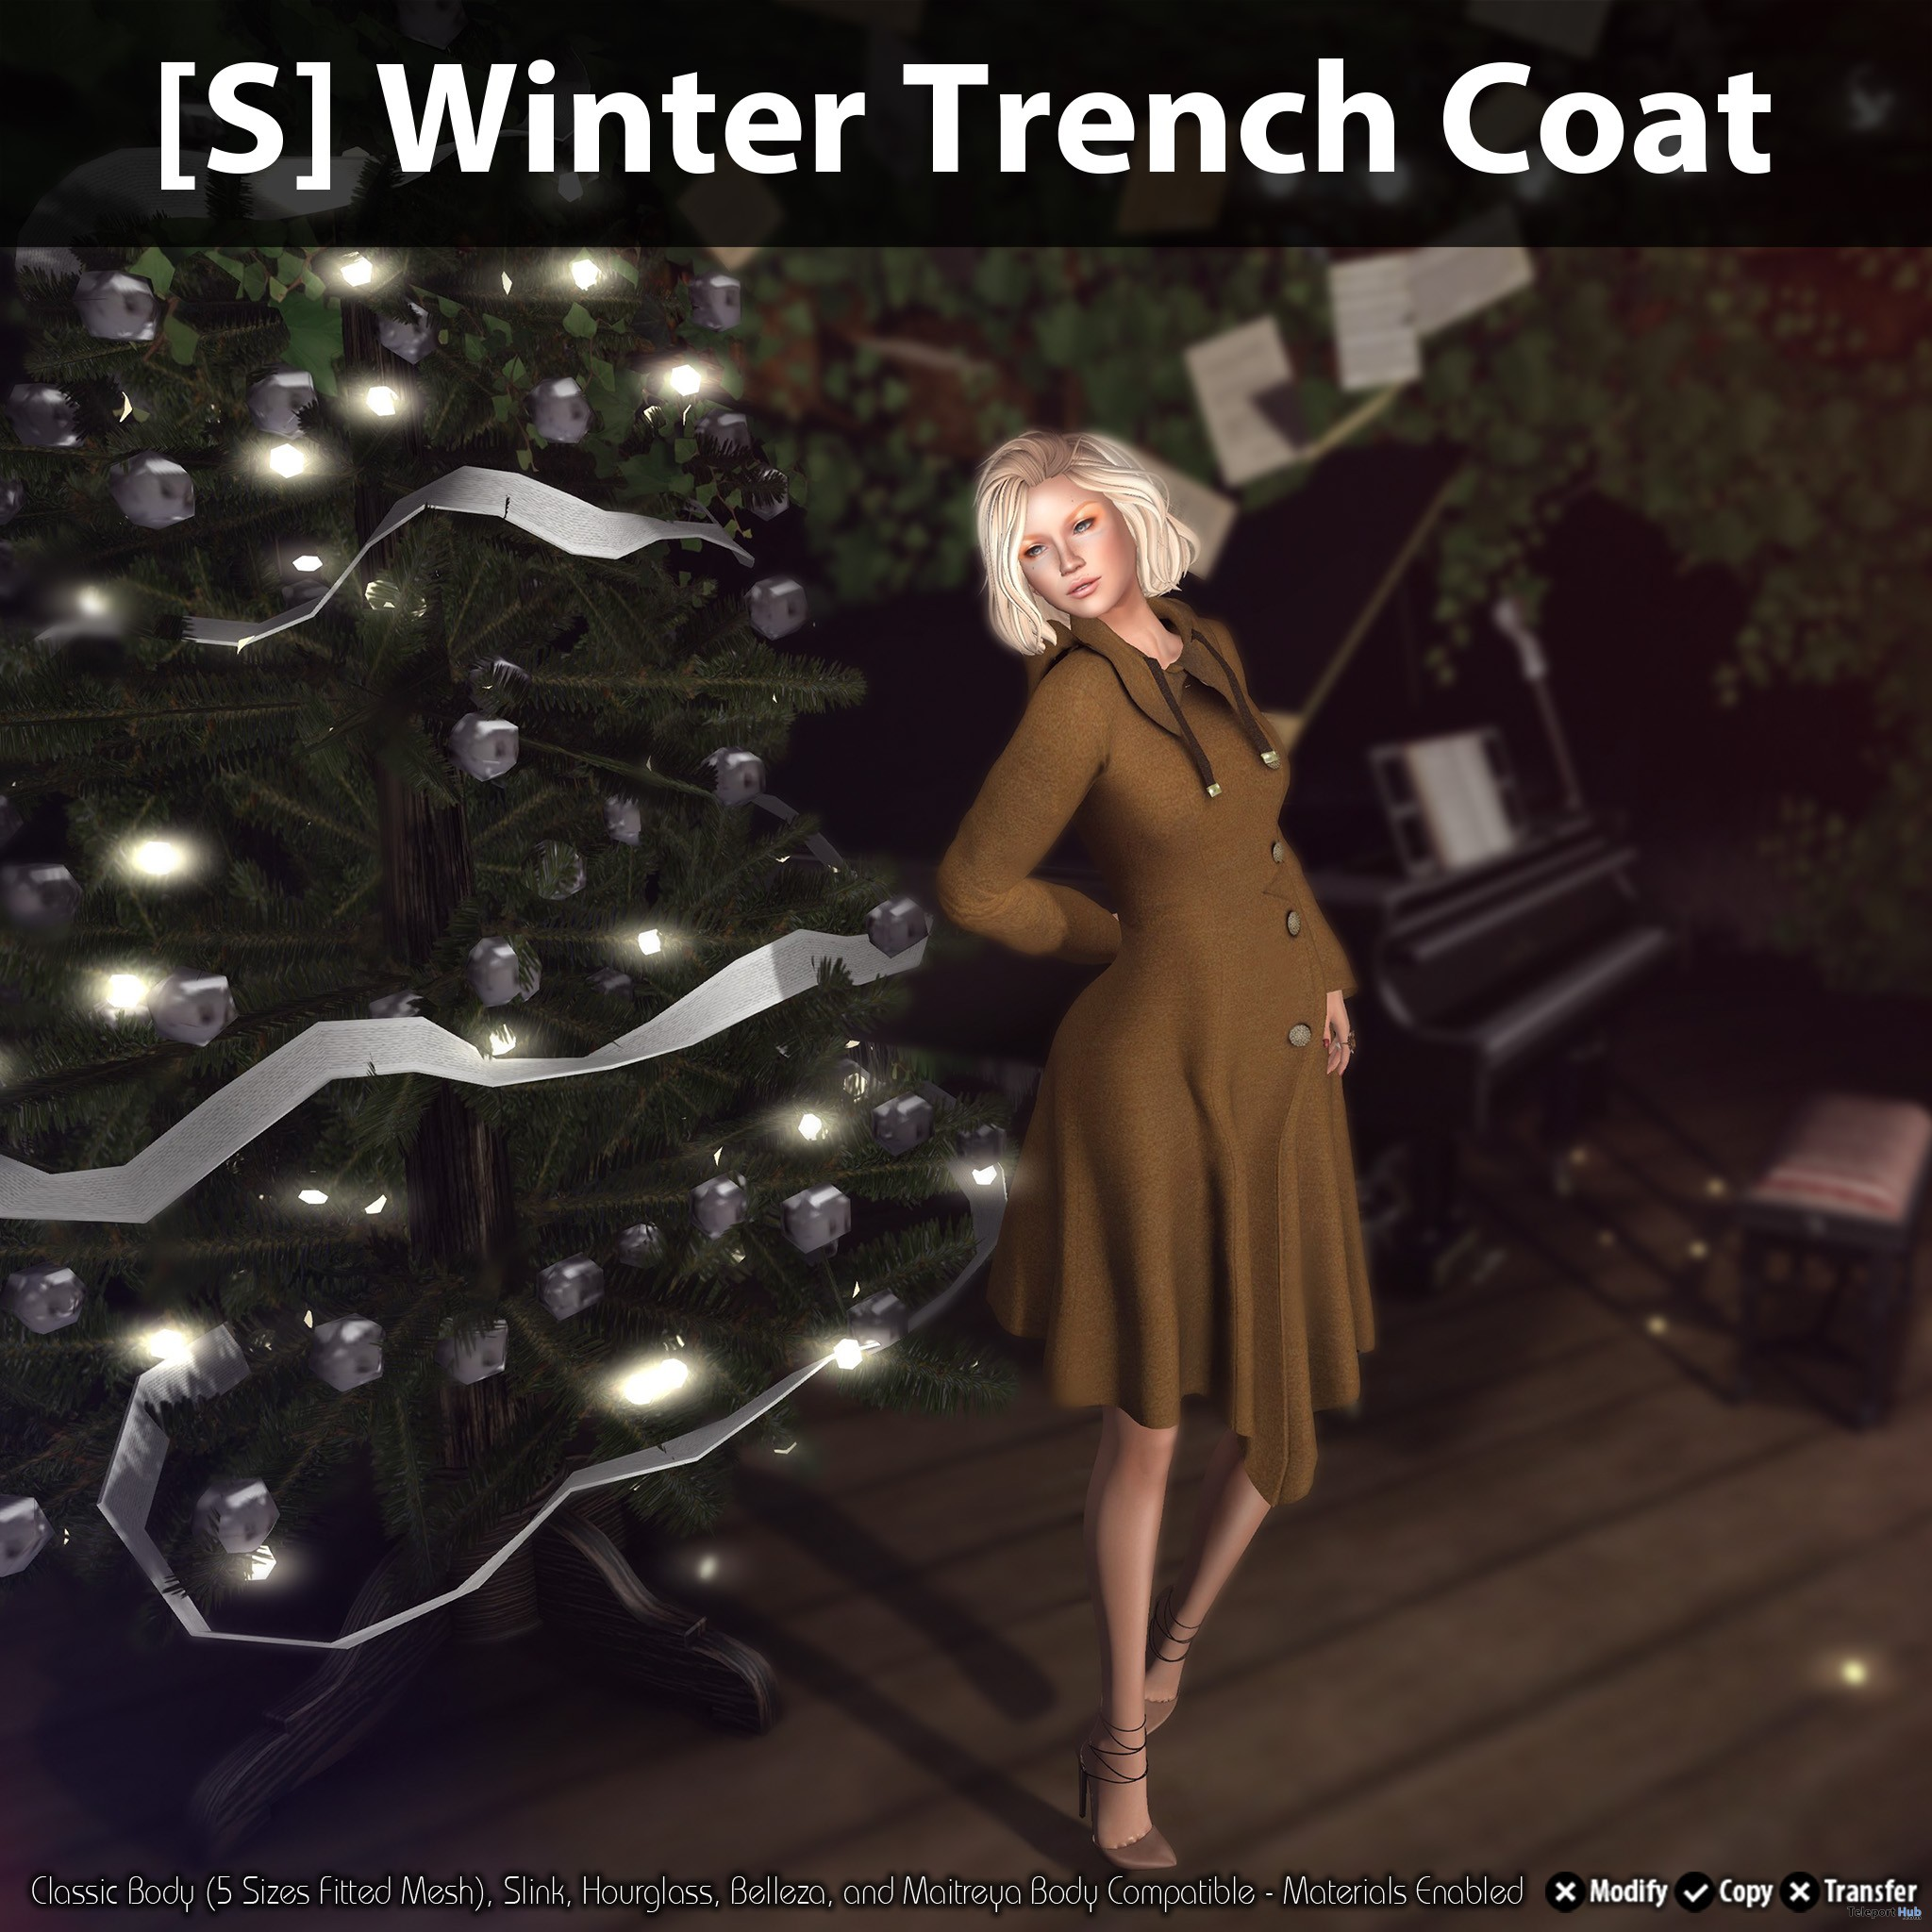 [S] Winter Trench Coat Teleport Hub Group Gift by [satus Inc] - Teleport Hub - teleporthub.com